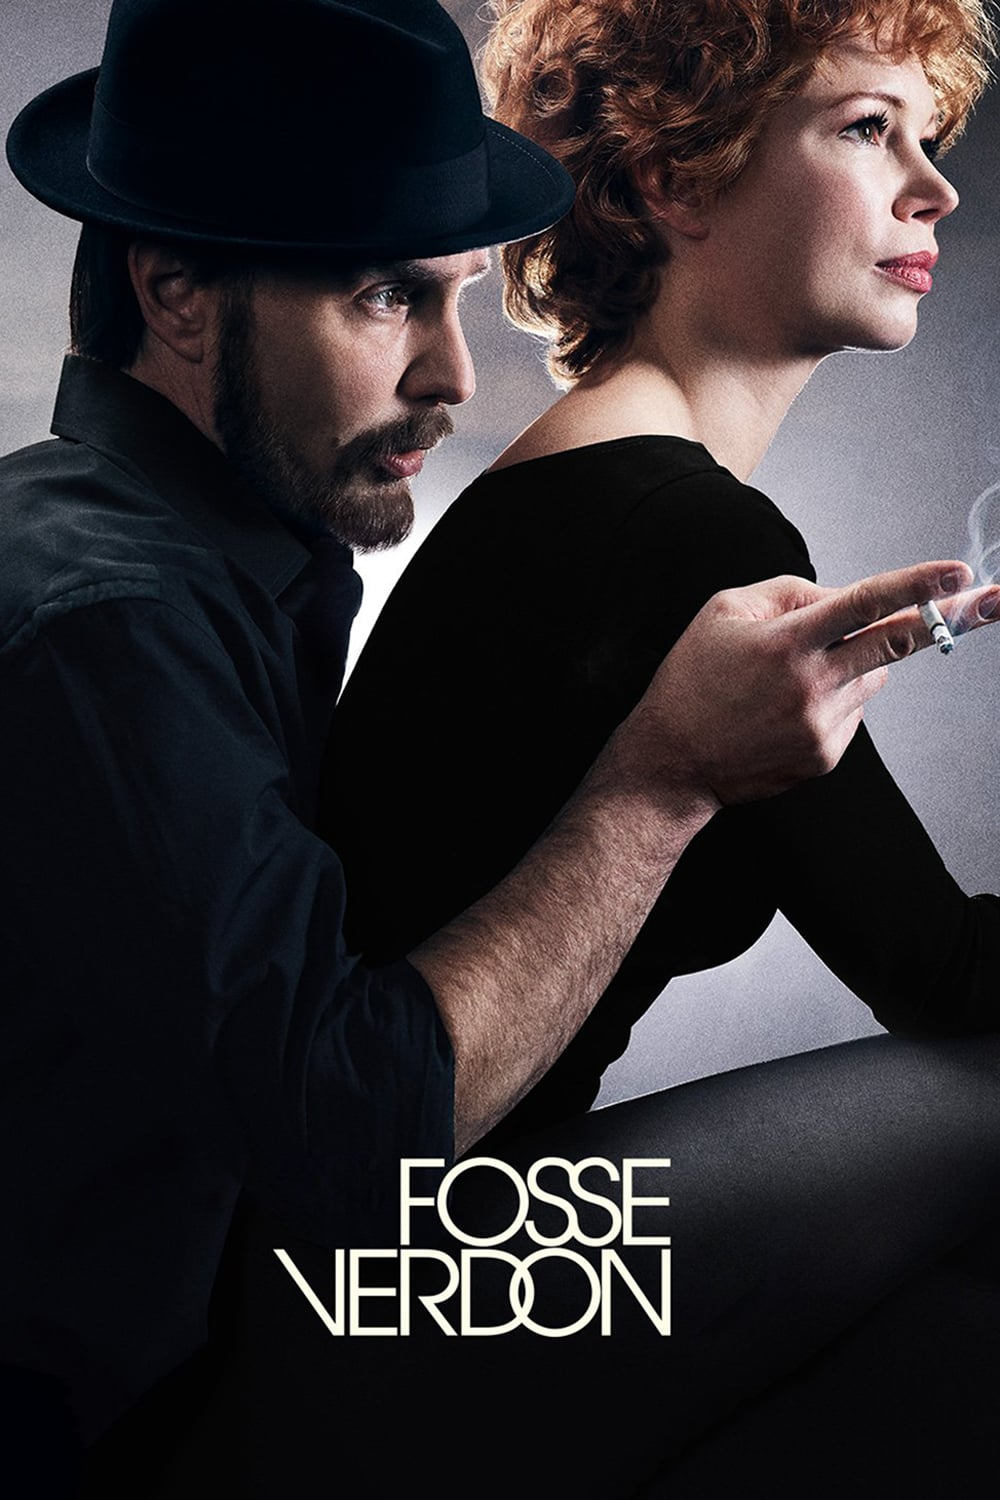 Fosse Verdon rating